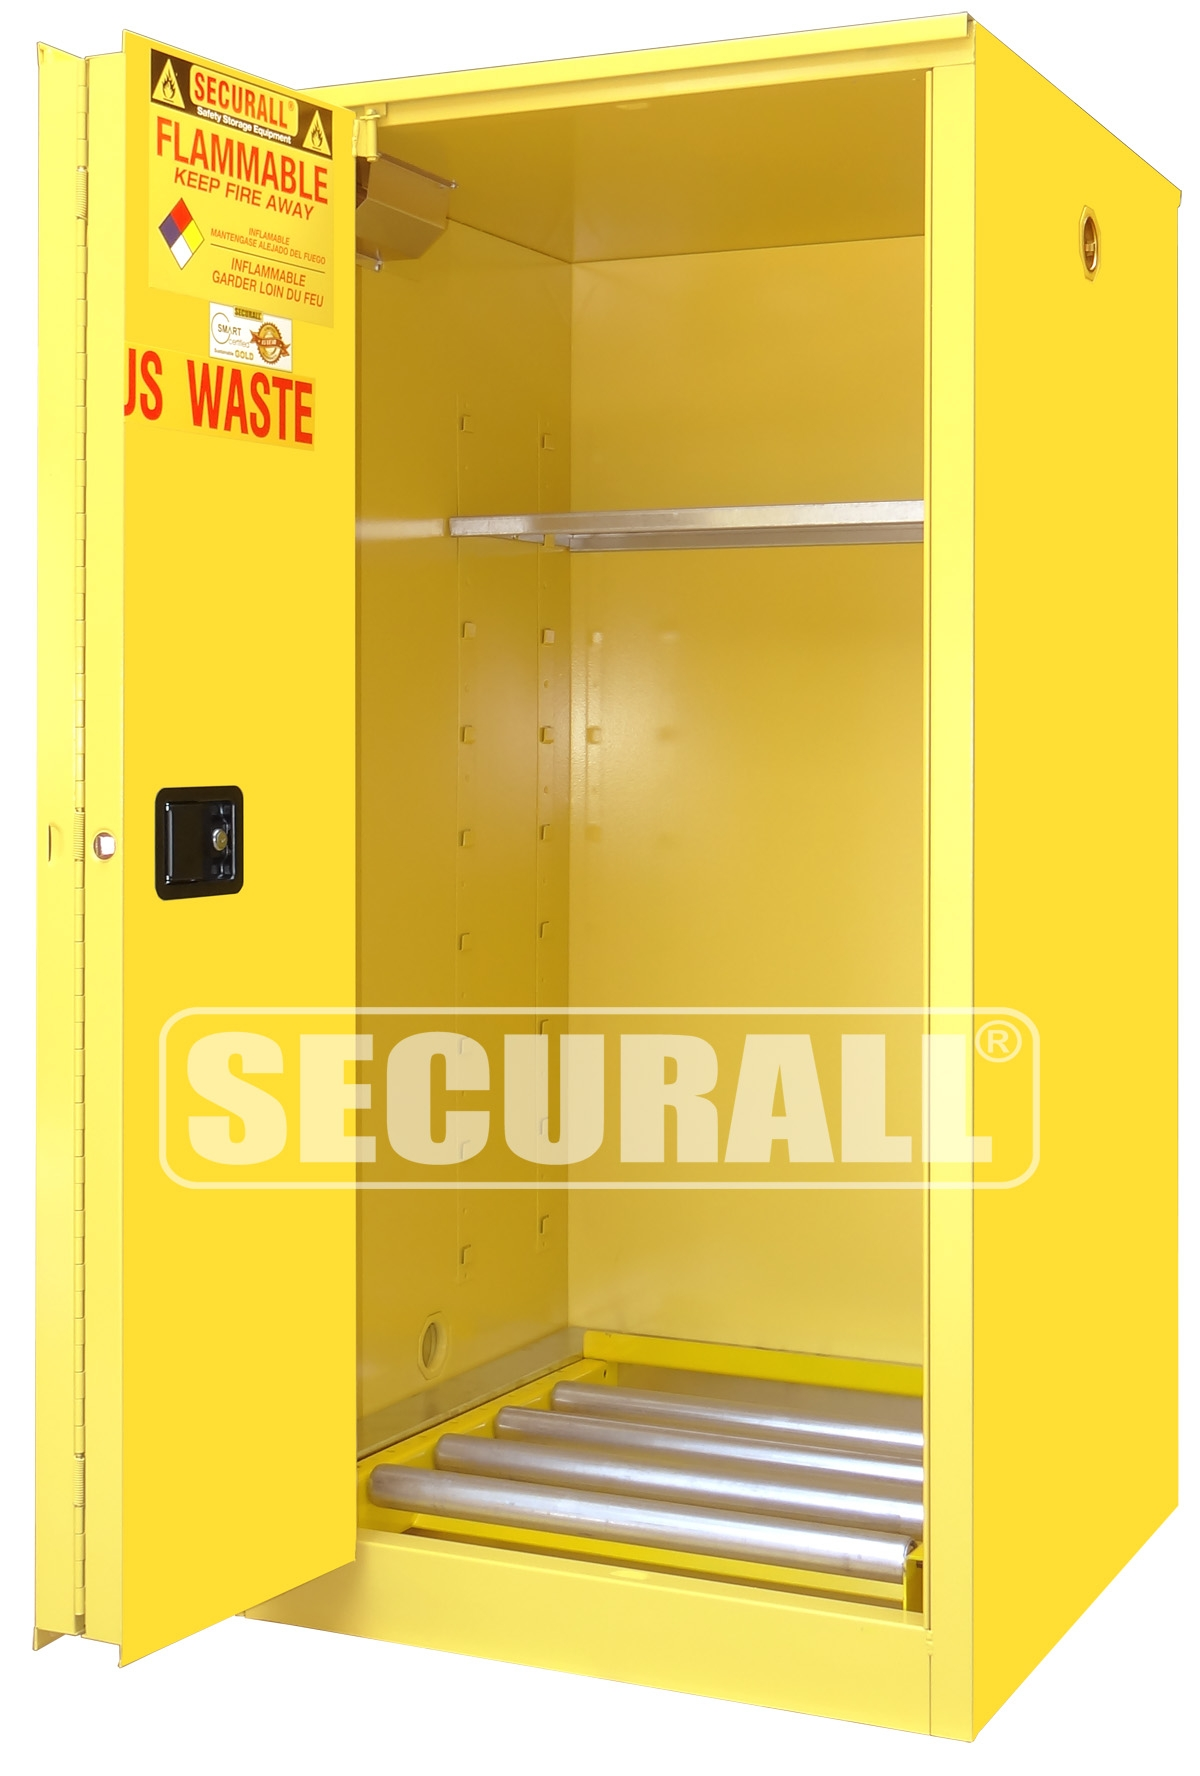 Metal Fuel Storage Cabinetssecurall hazmat storage drum storage cabinets hazardous waste